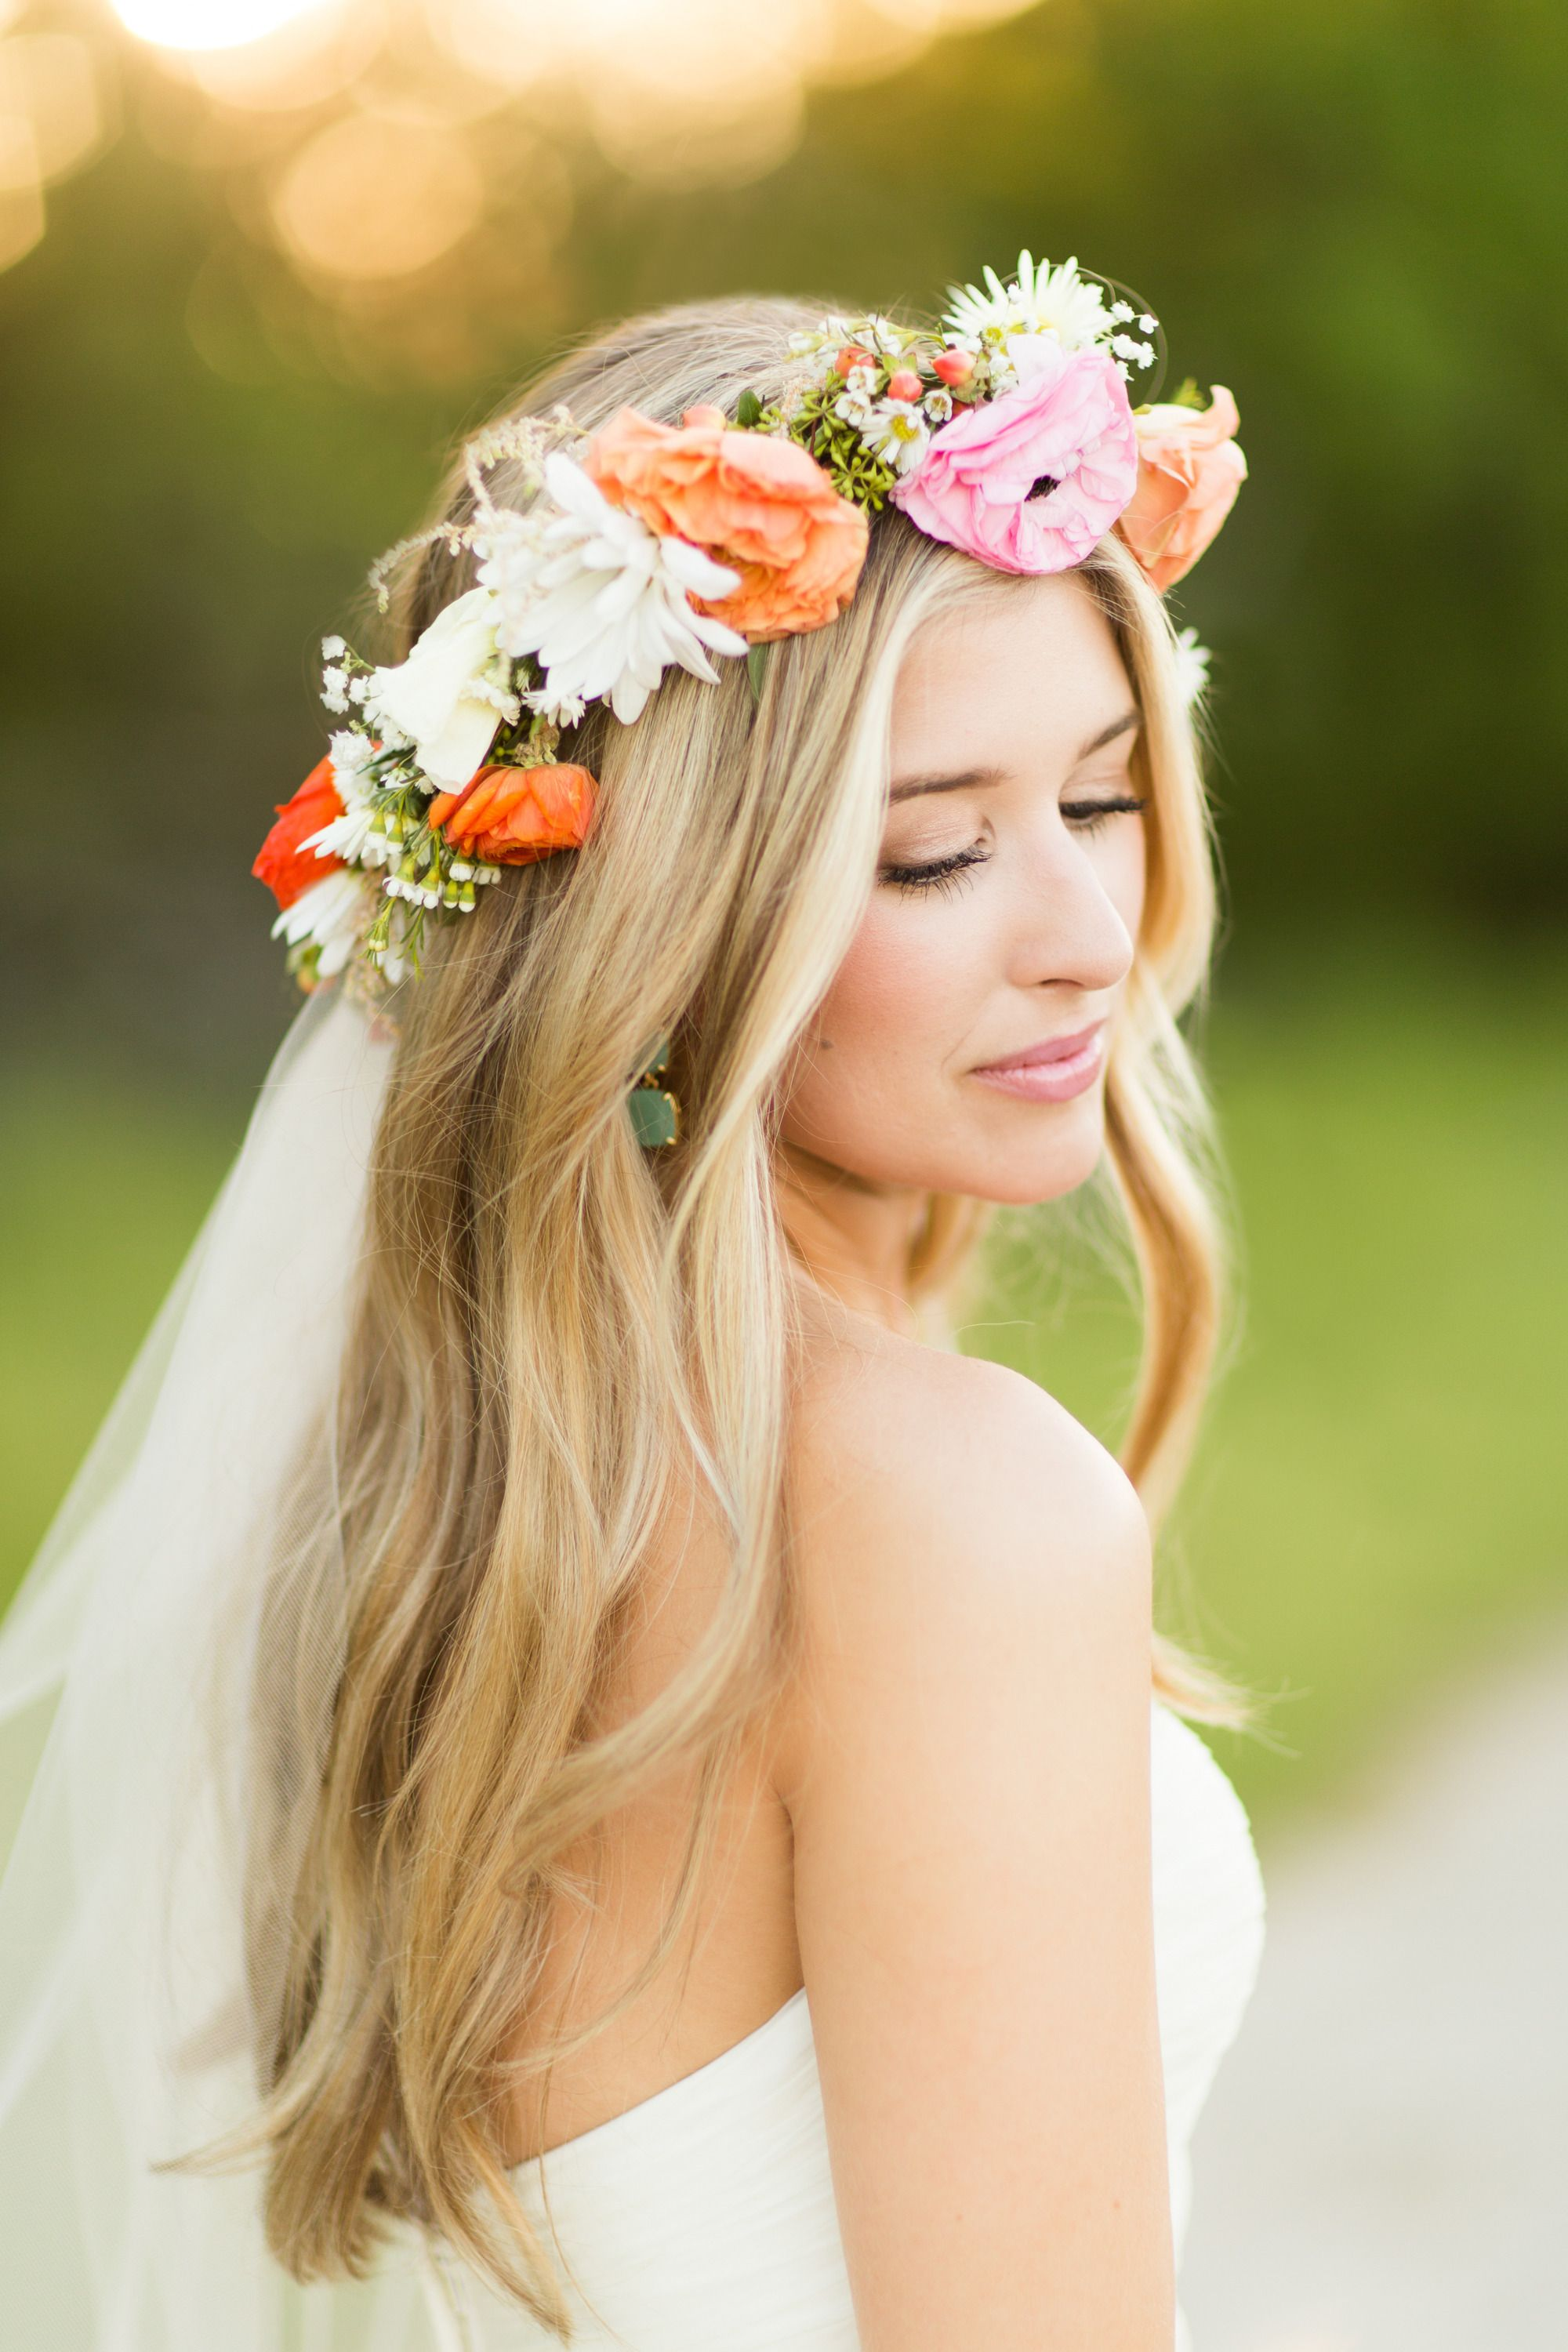 Rustic wedding with pops of pink pinterest flower crowns bridal photography haley rynn ringo haleyringo read more httpstylemepretty20141004rustic wedding with pops of pink izmirmasajfo